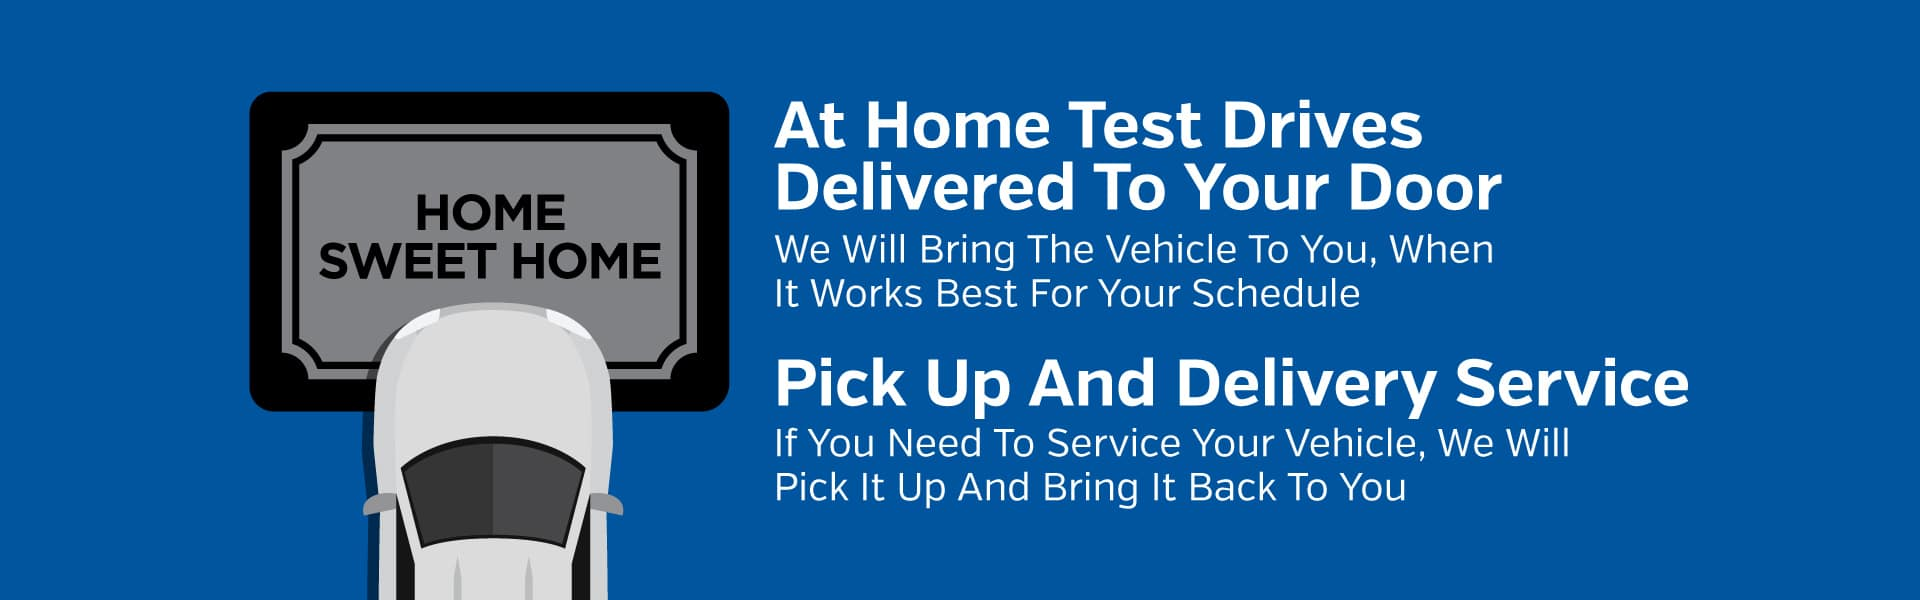 At Home Test Drives Delivered To Your Door - Pick Up and Delivery Available